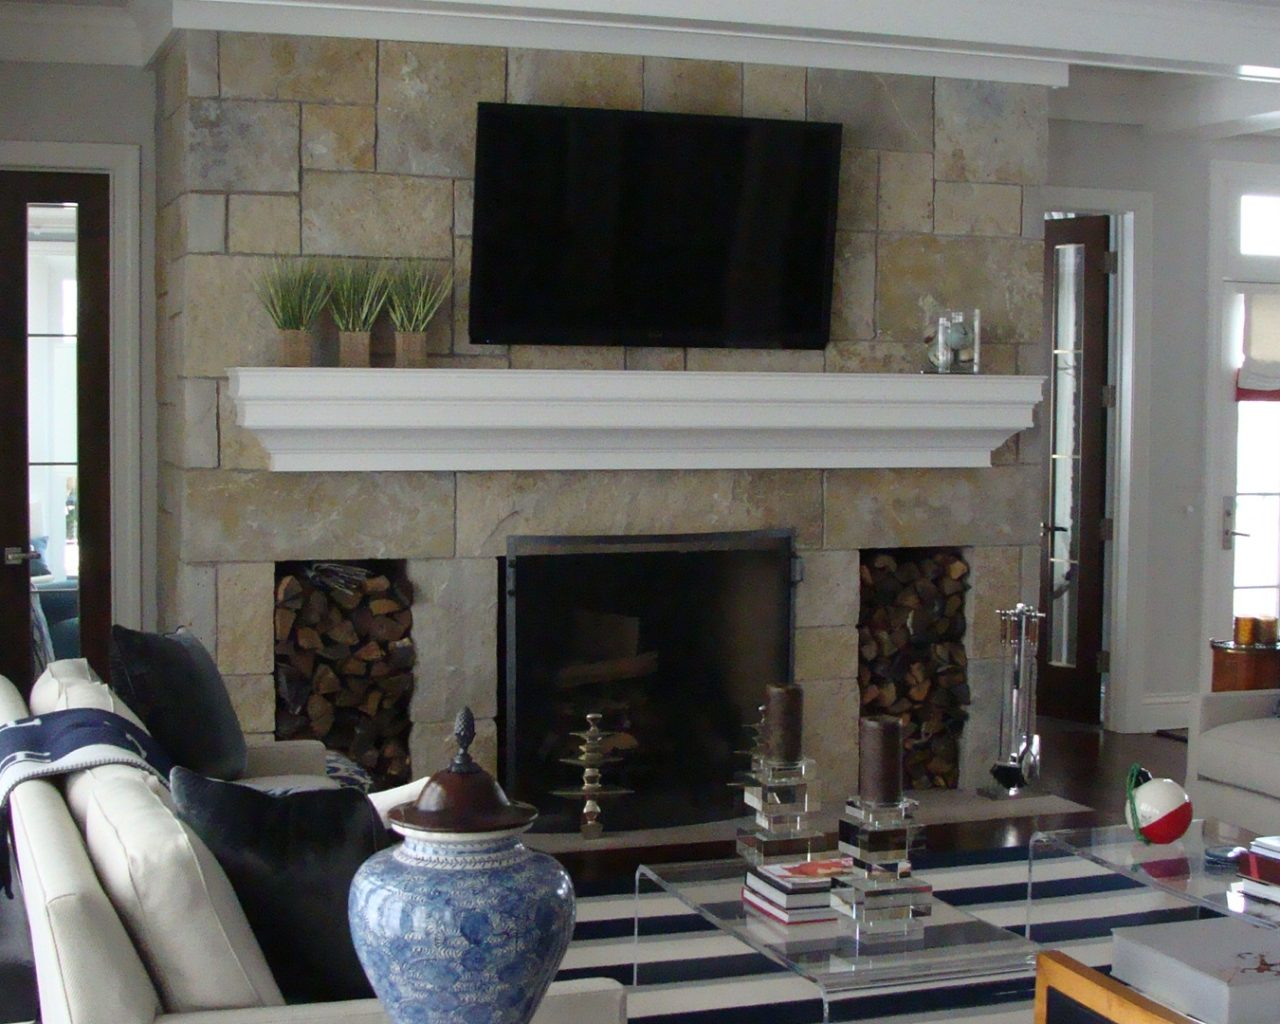 Excelsior - Sister Bay Stone Indoor Fireplace